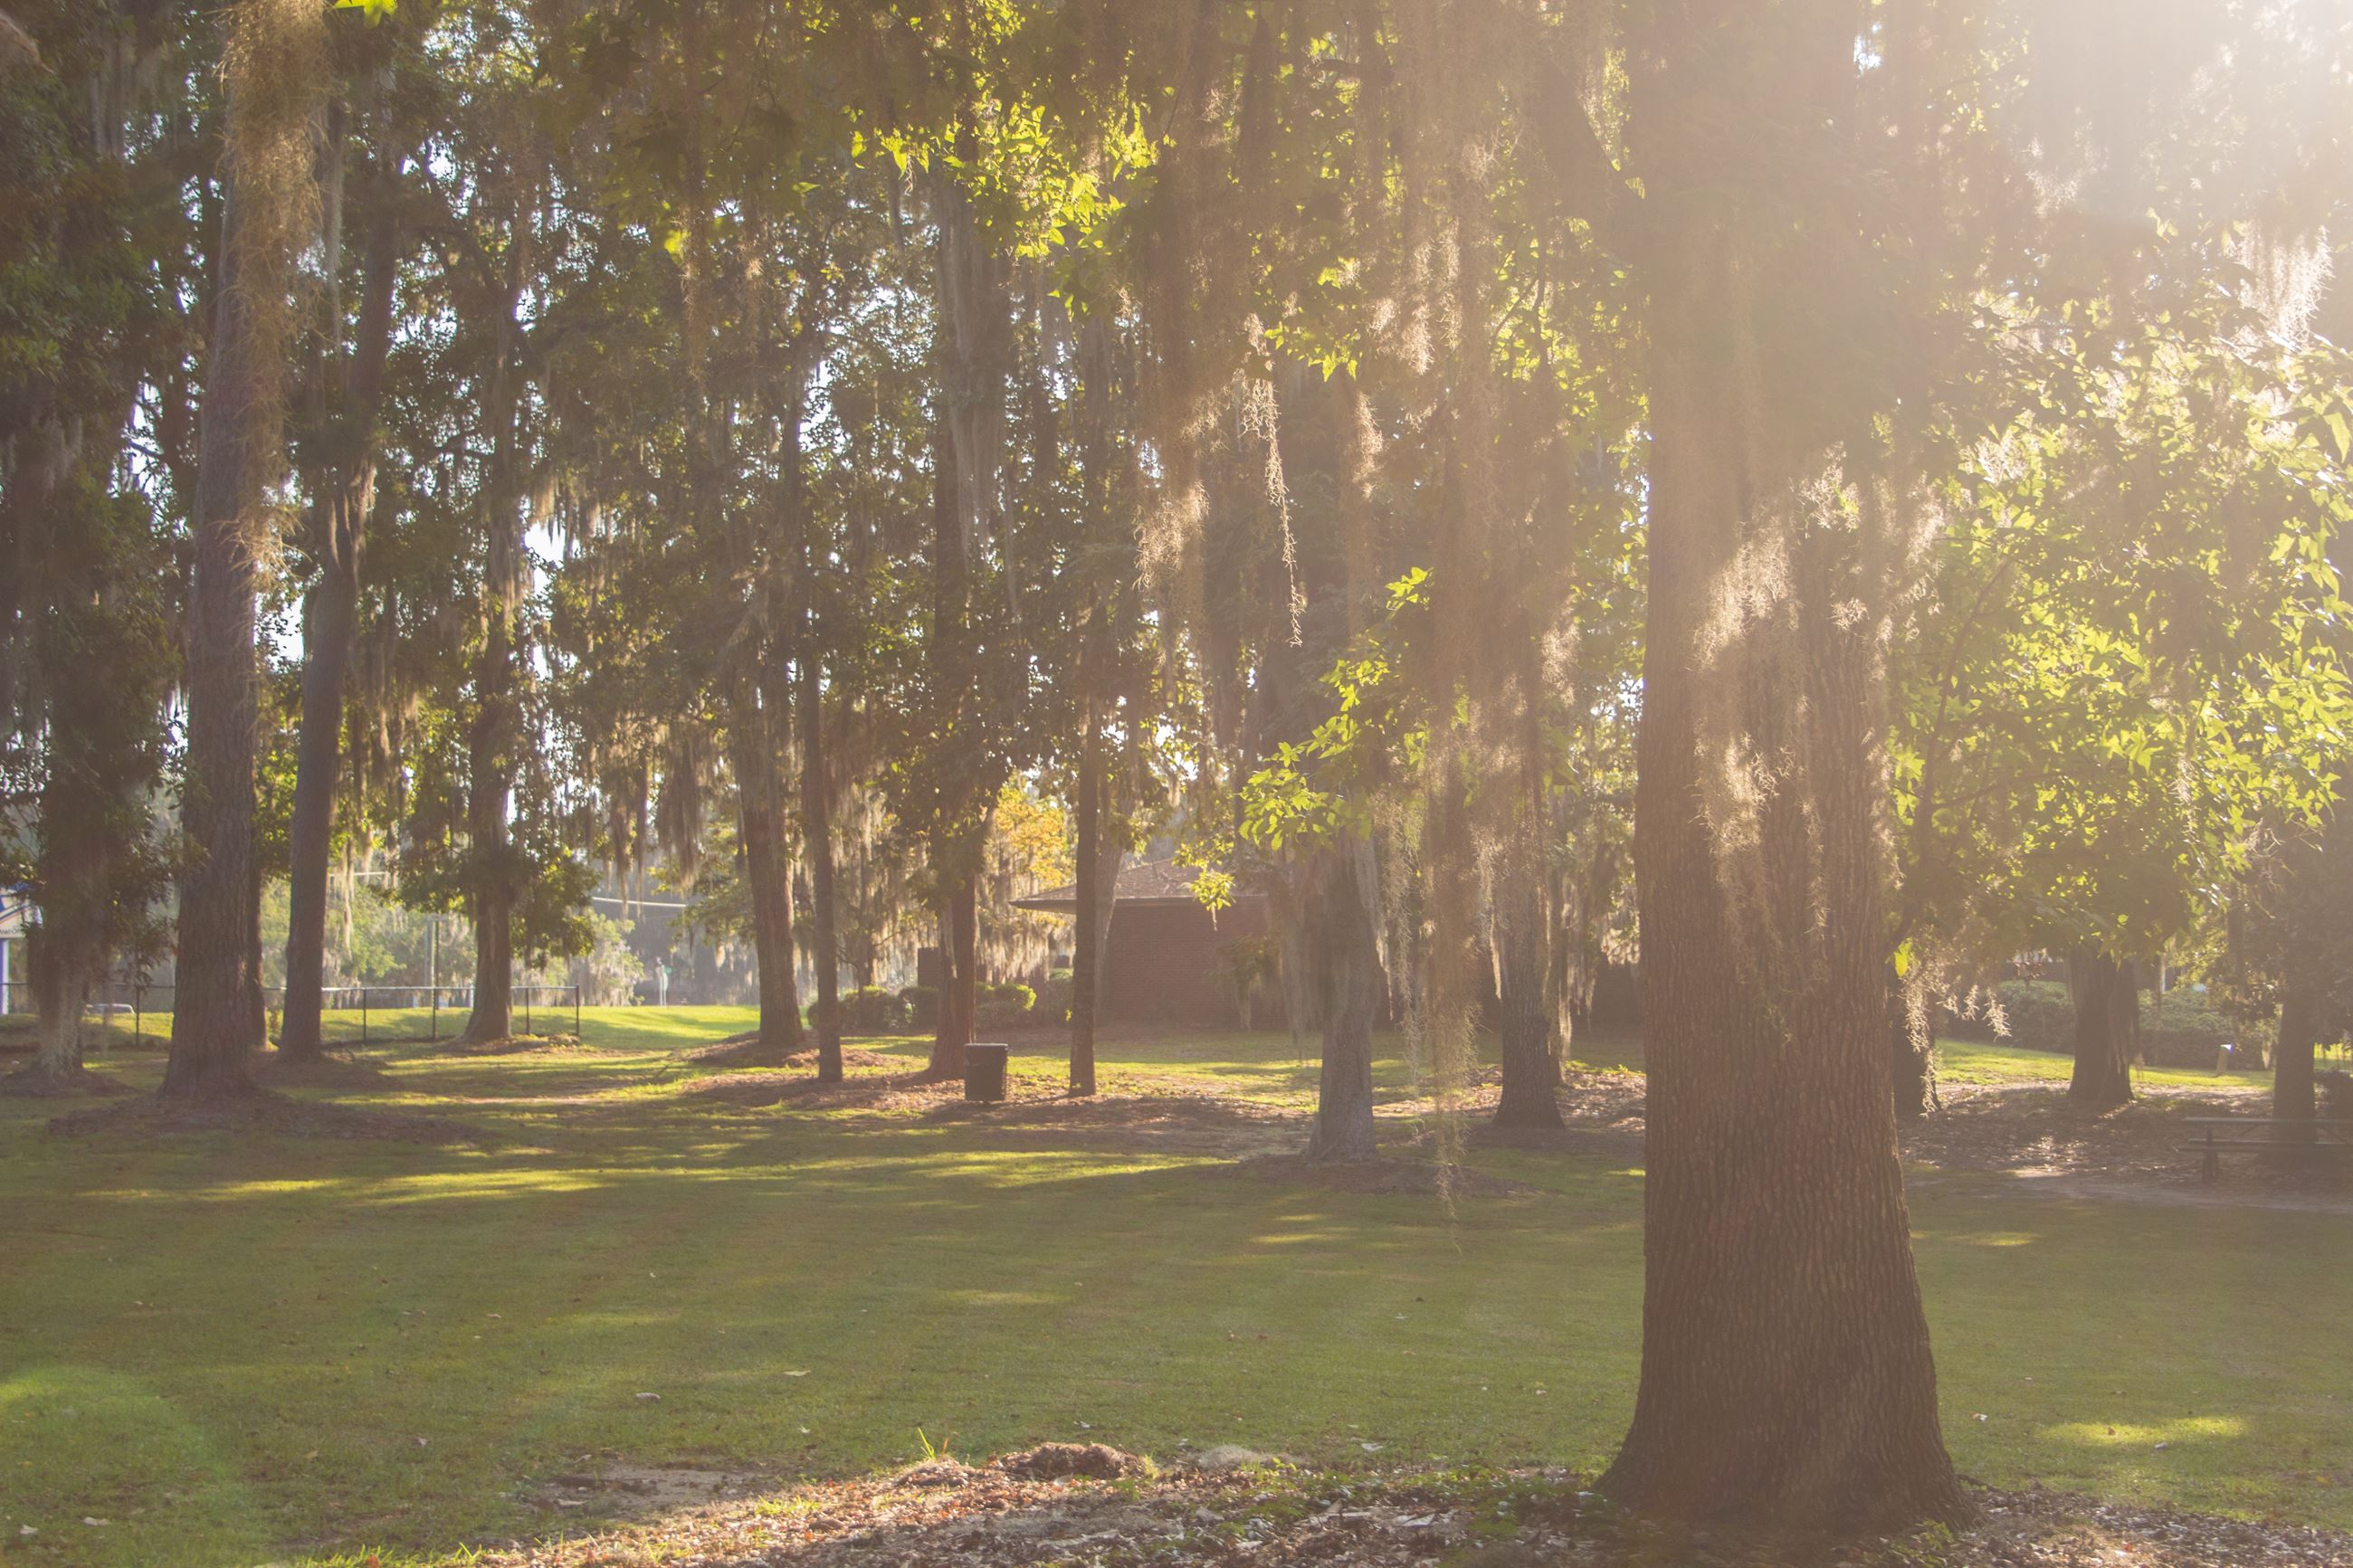 An image of trees in afternoon sun.